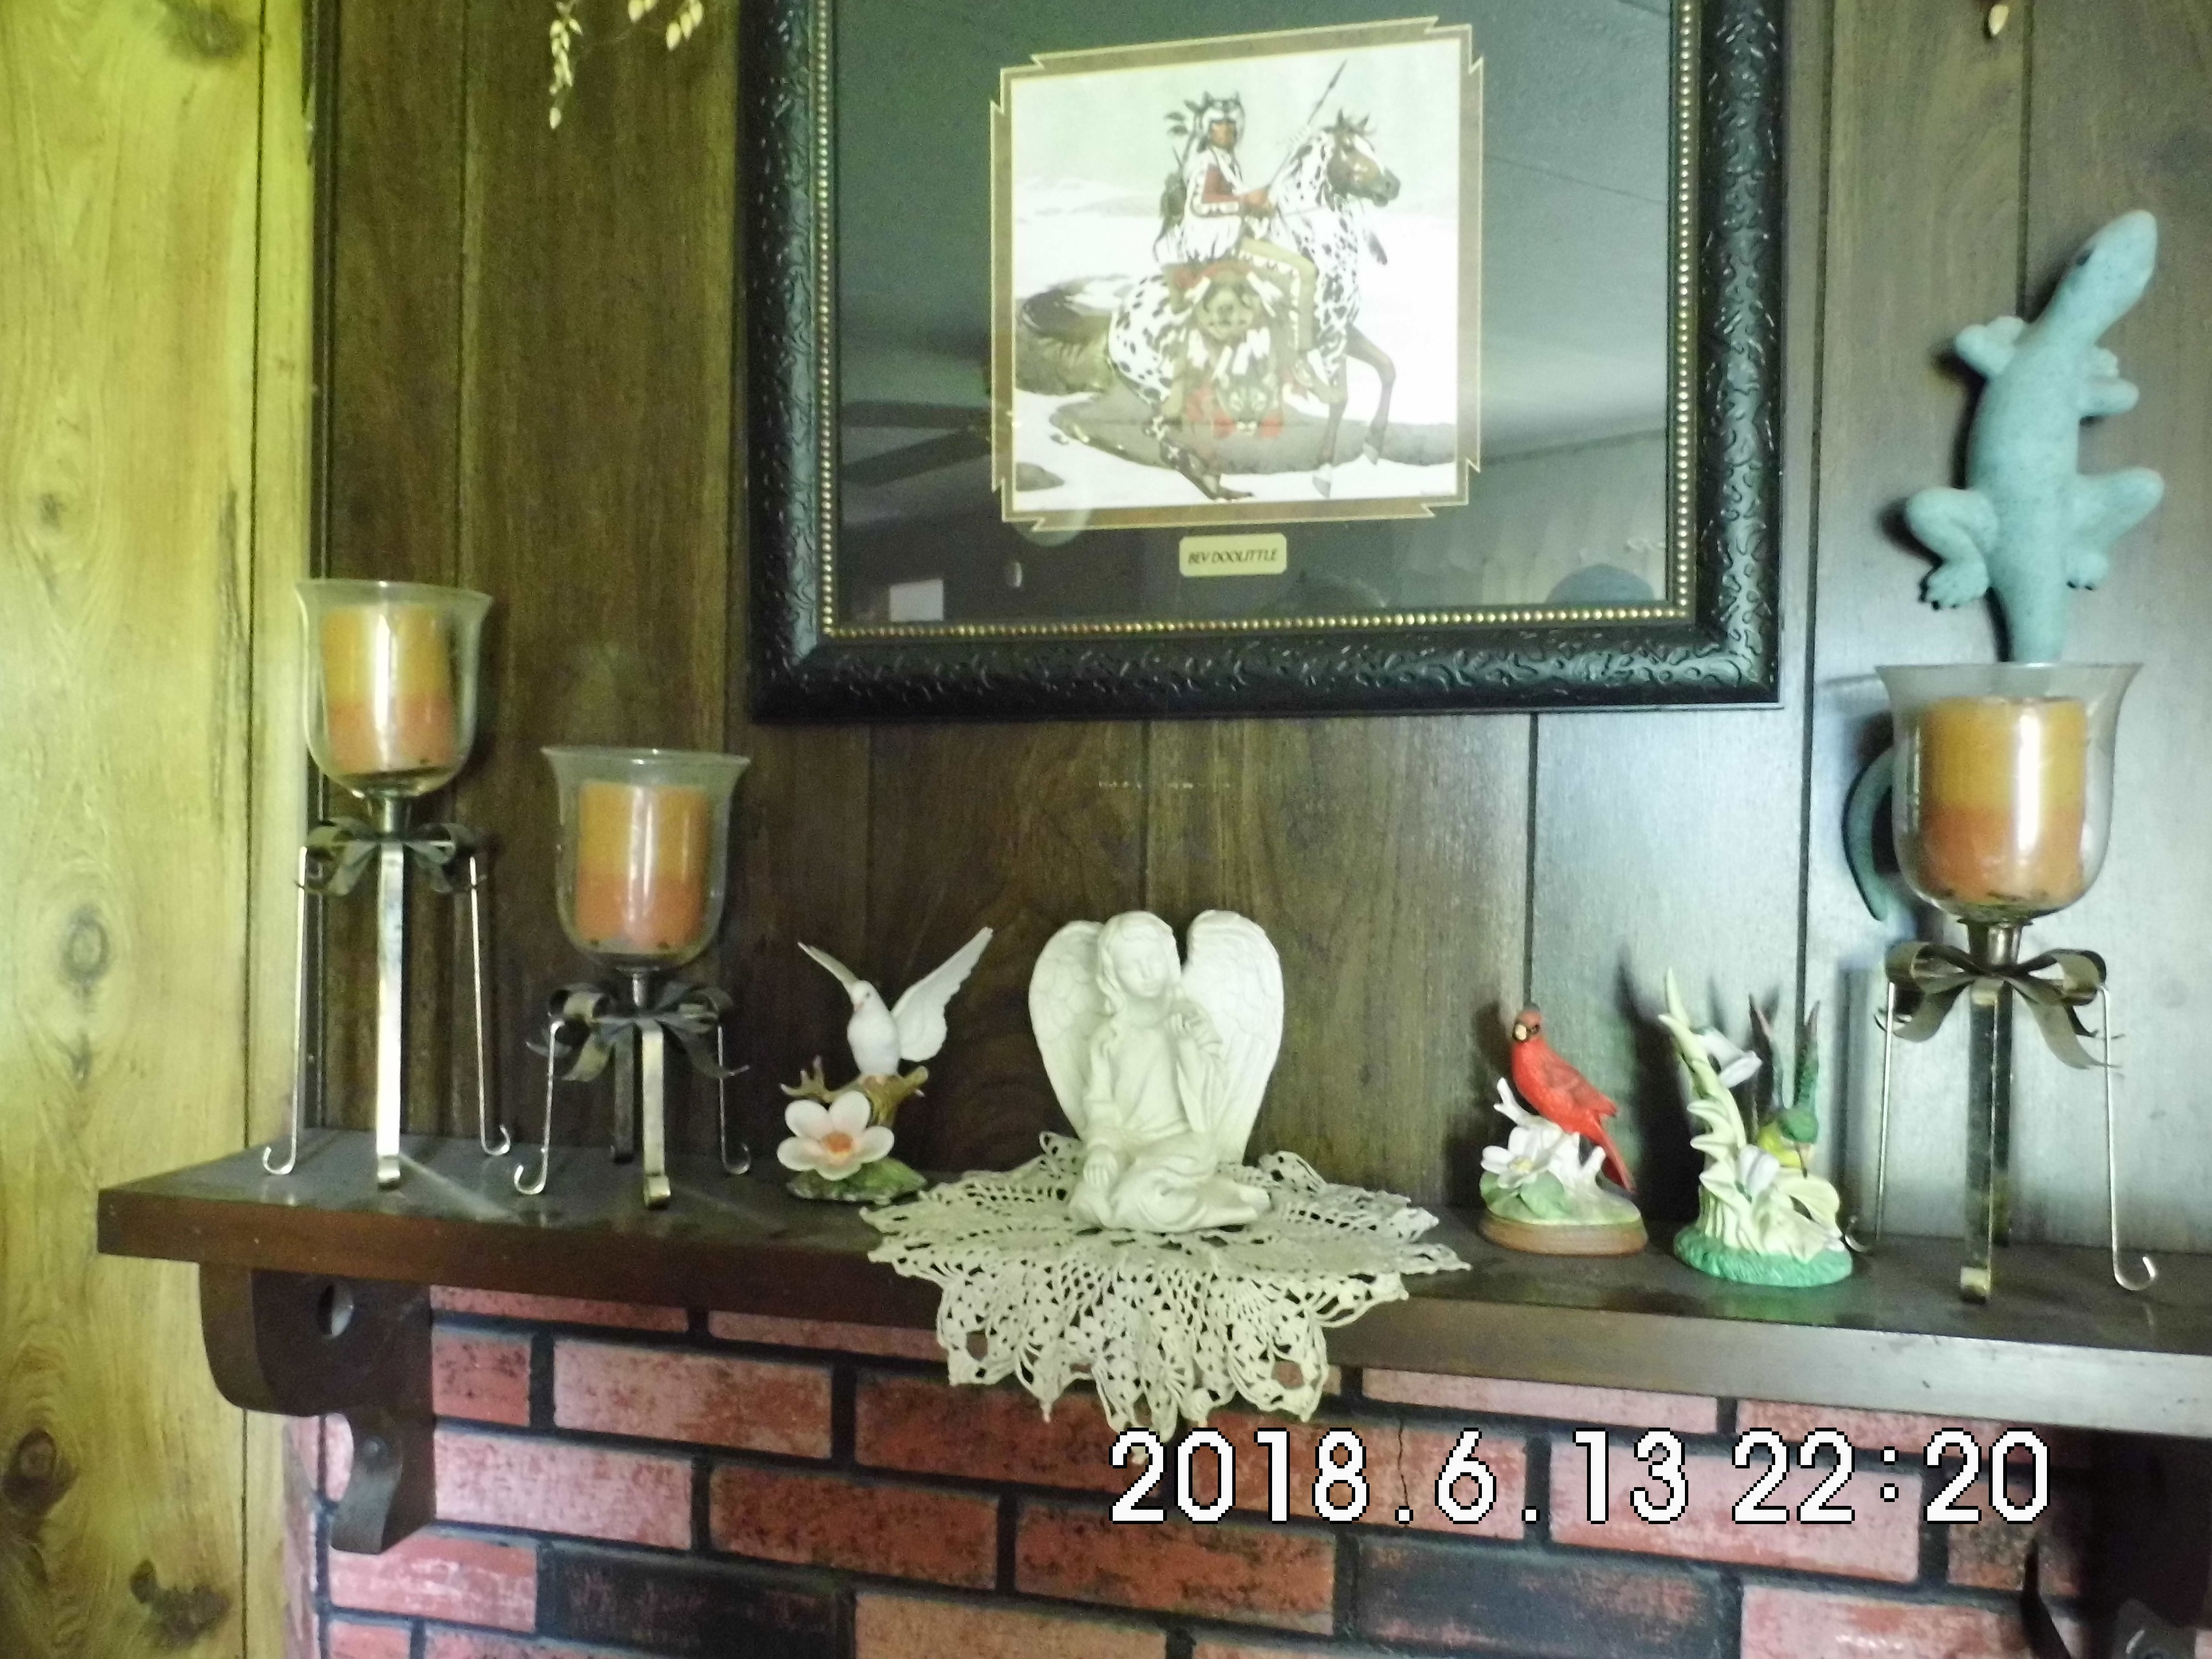 Candle Holders and Knick Knacks